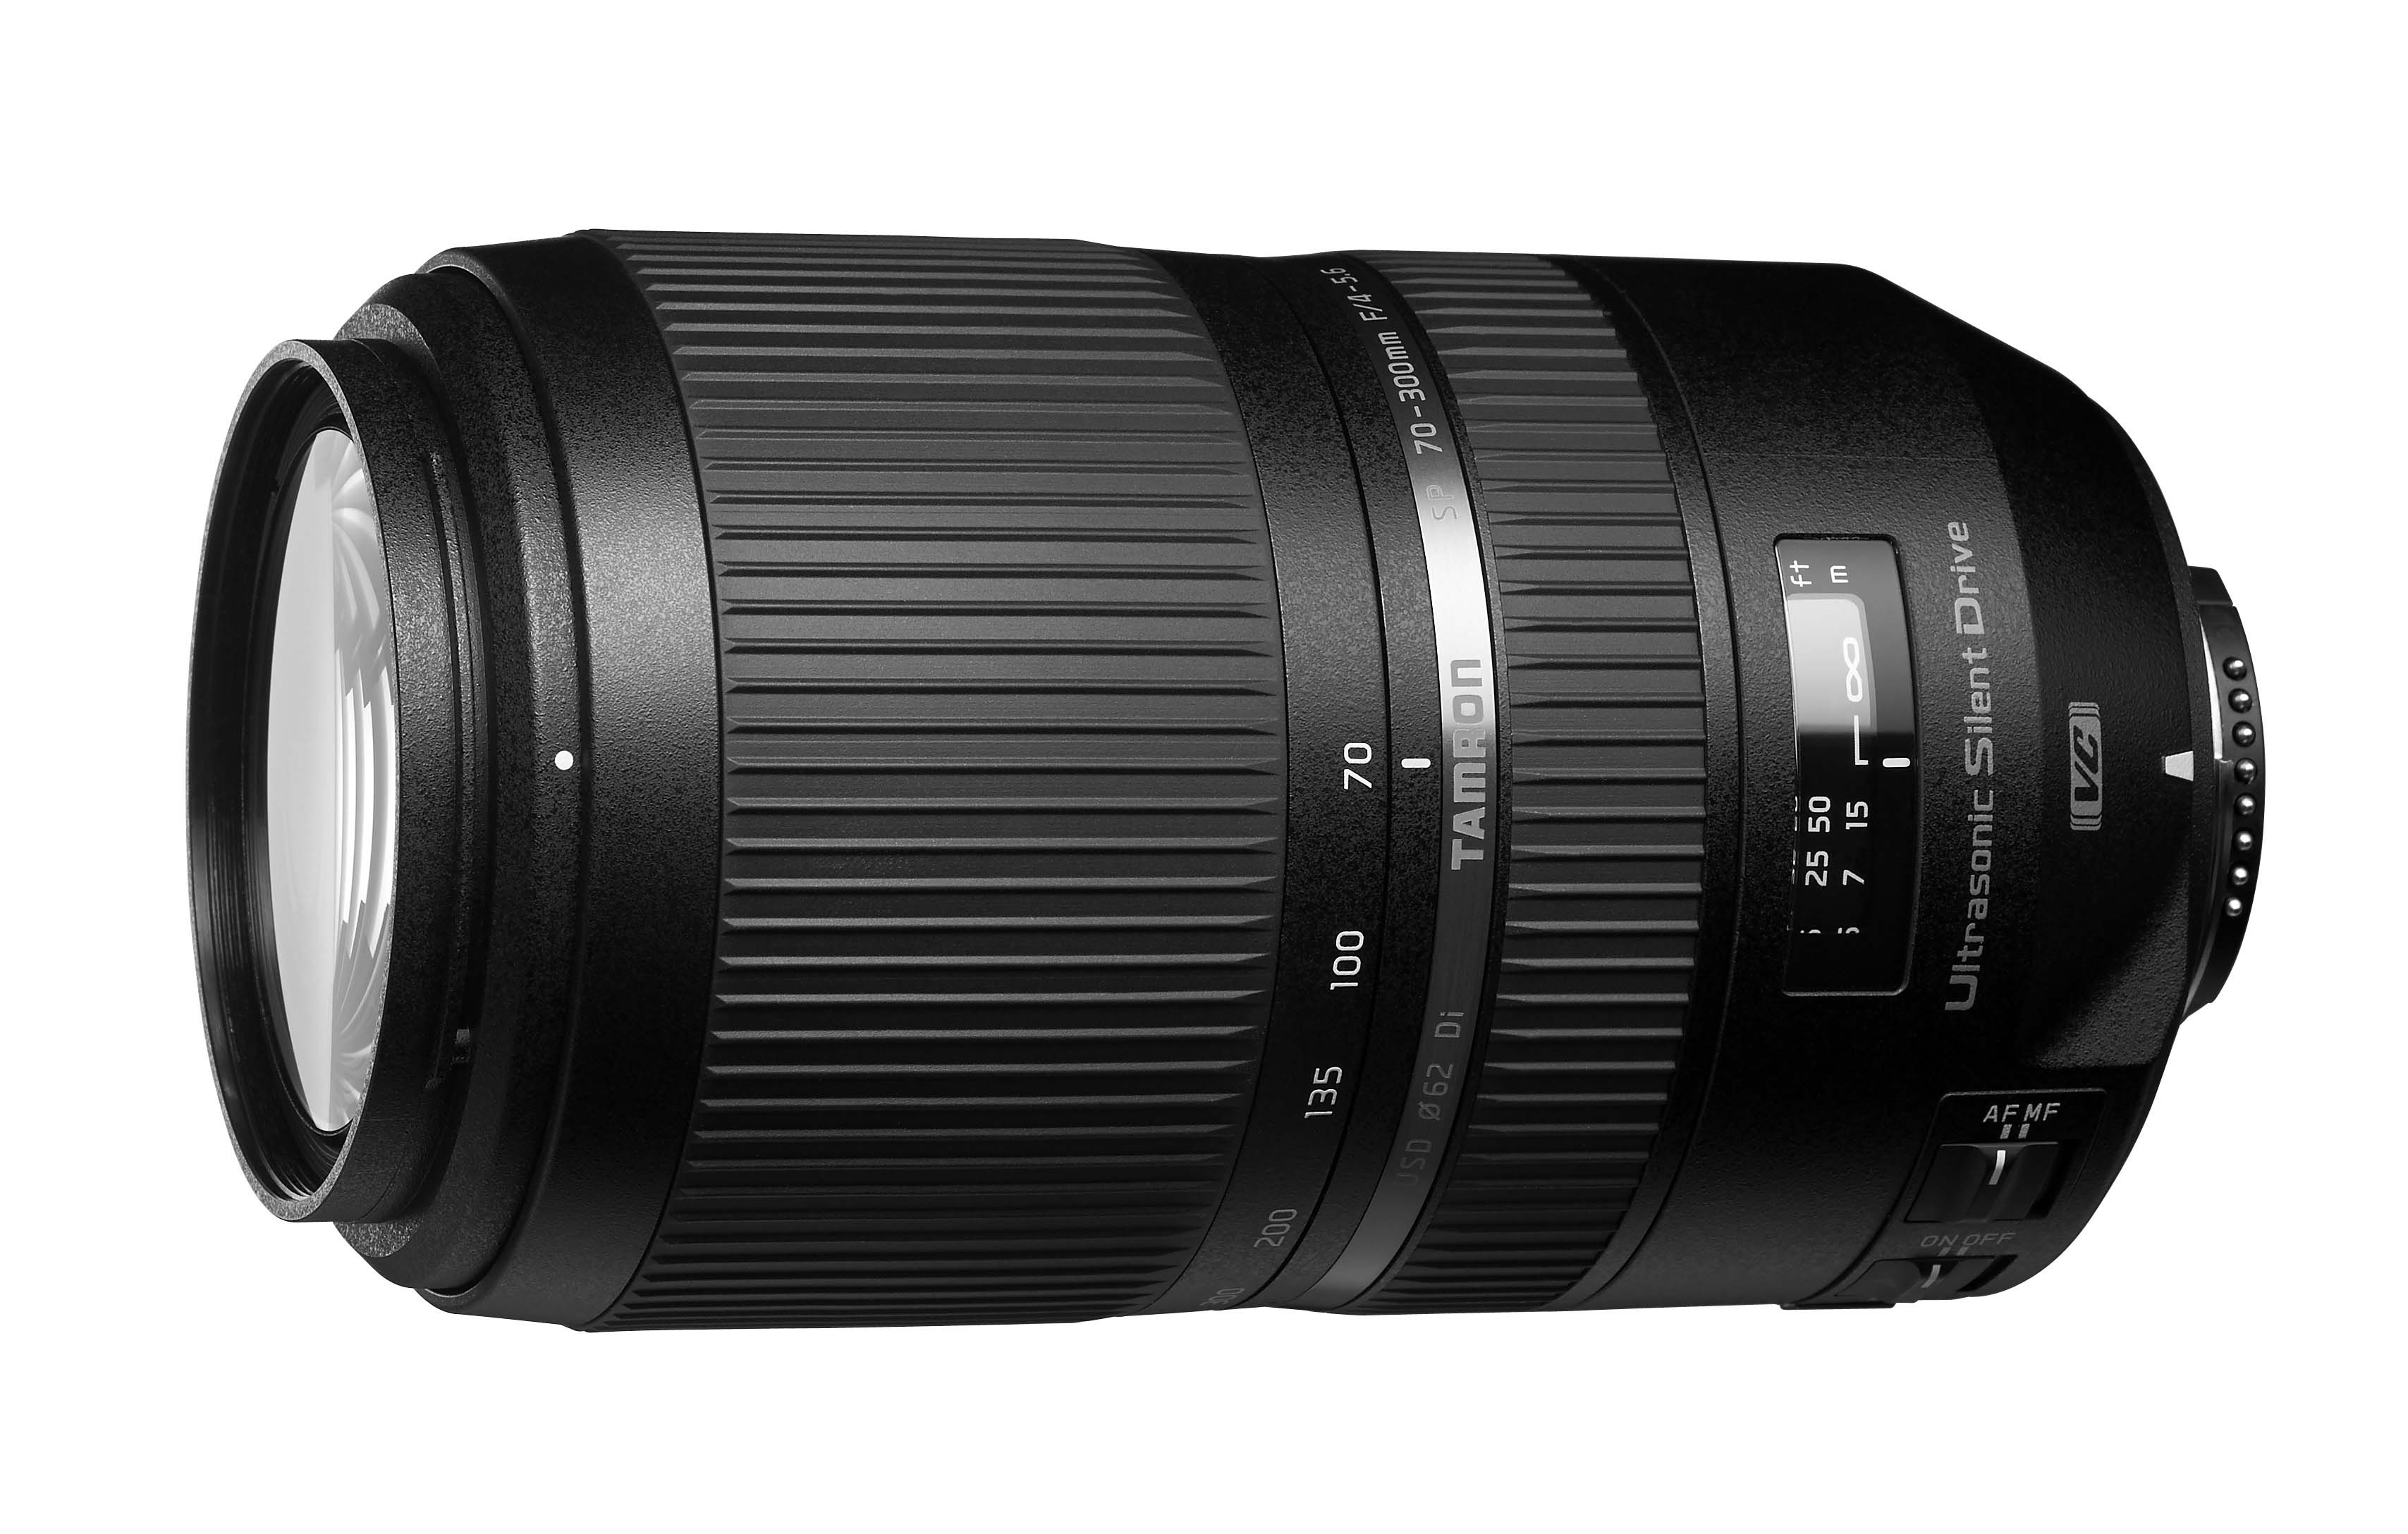 SP 70-300mm F/4-5.6 Di VC USD